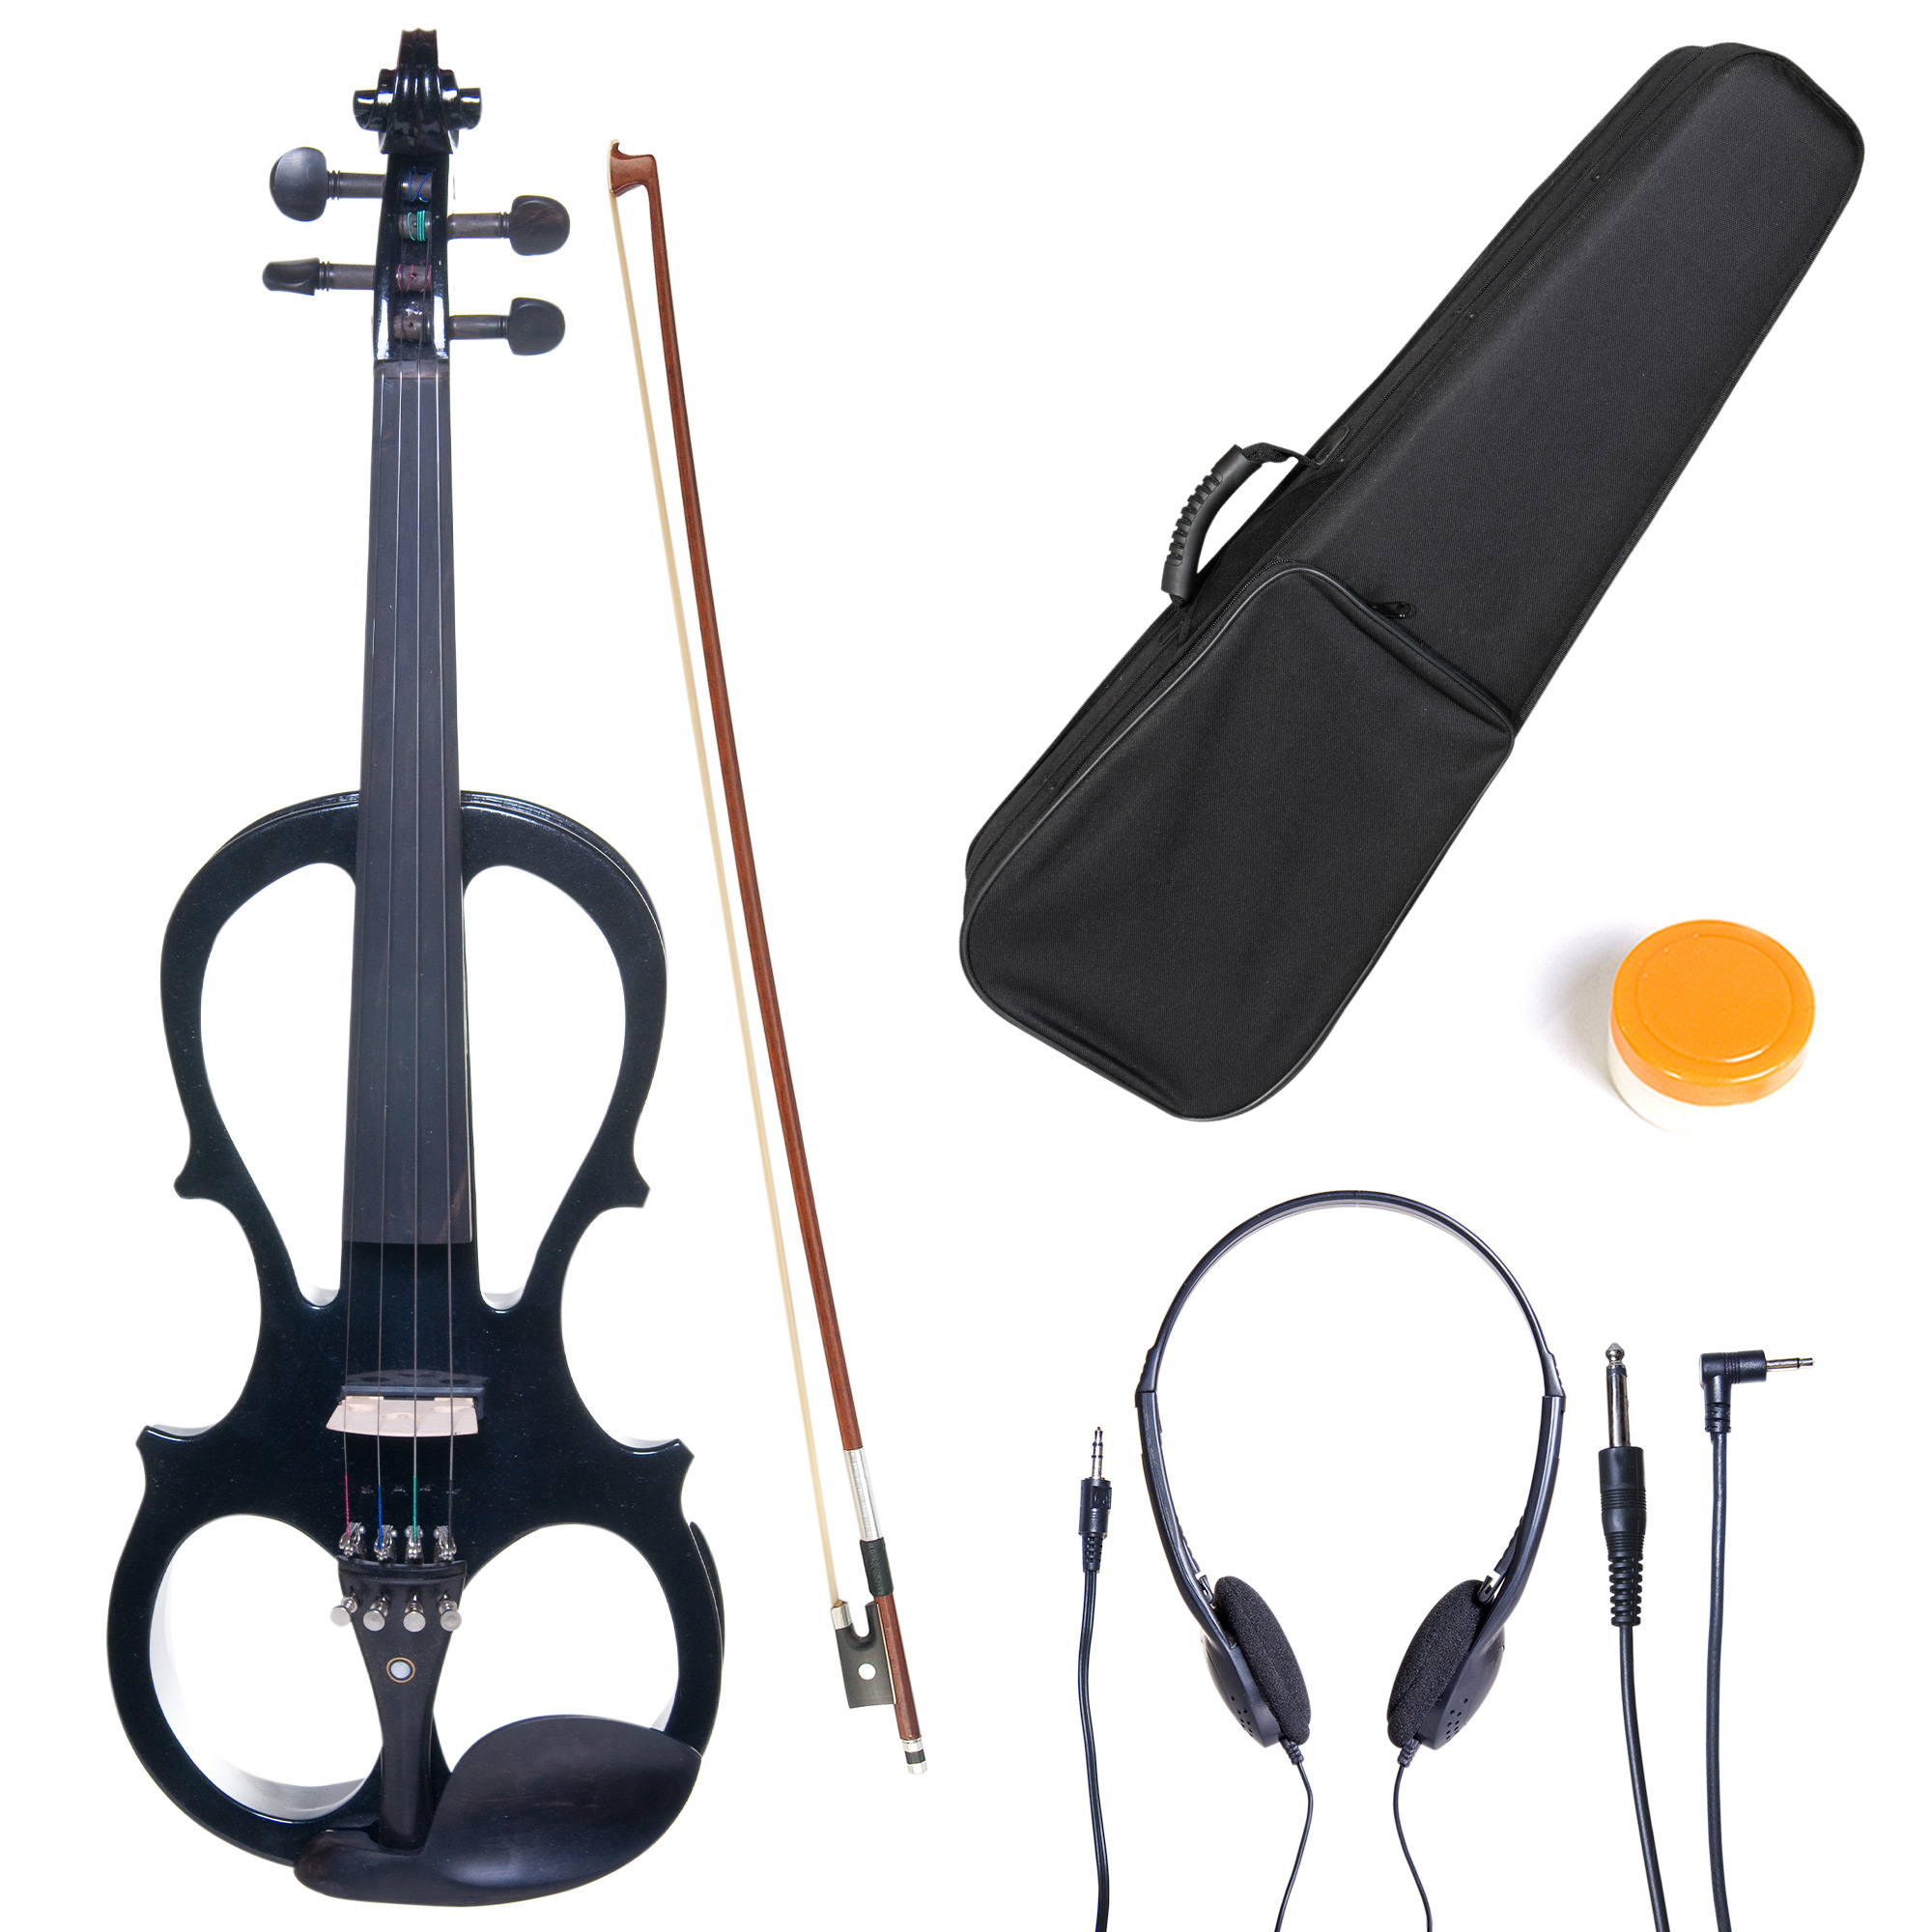 Cecilio Full Size Left-Handed Solid Wood Electric Silent Violin with Ebony Fittings L4/4CEVN-L1BK Metallic Black